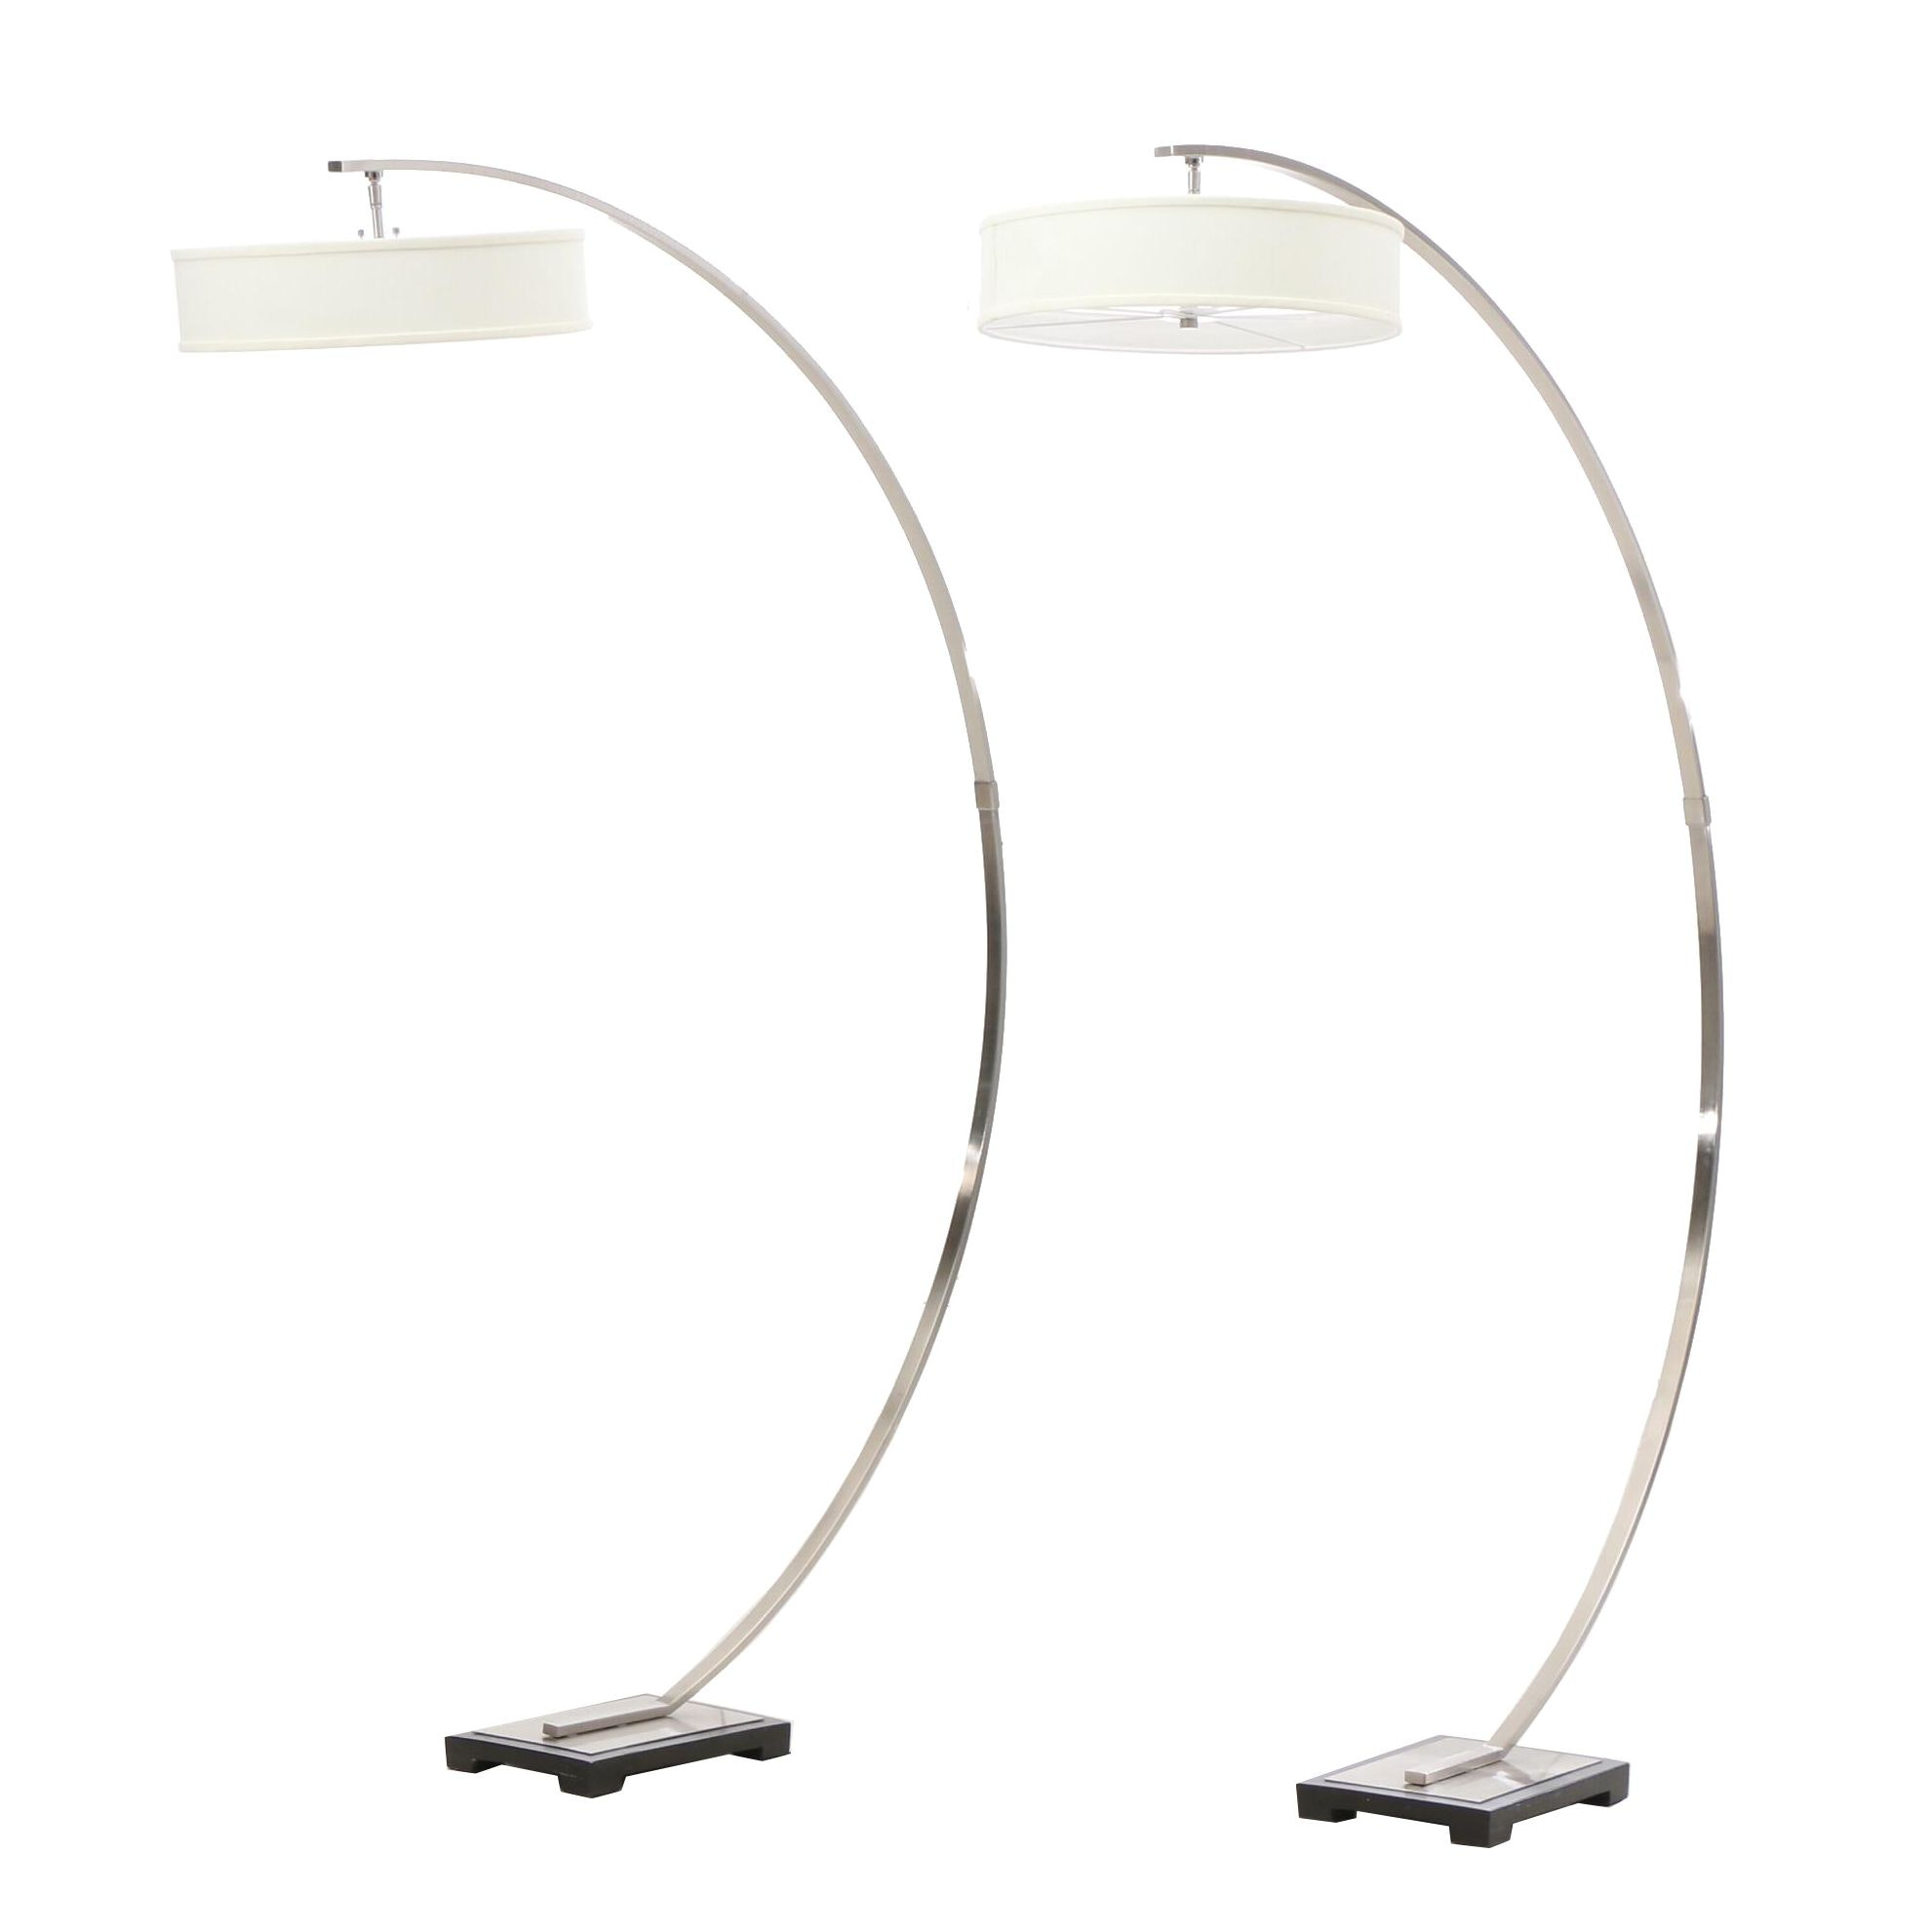 Modernist Chrome Finish Arching Floor Lamps